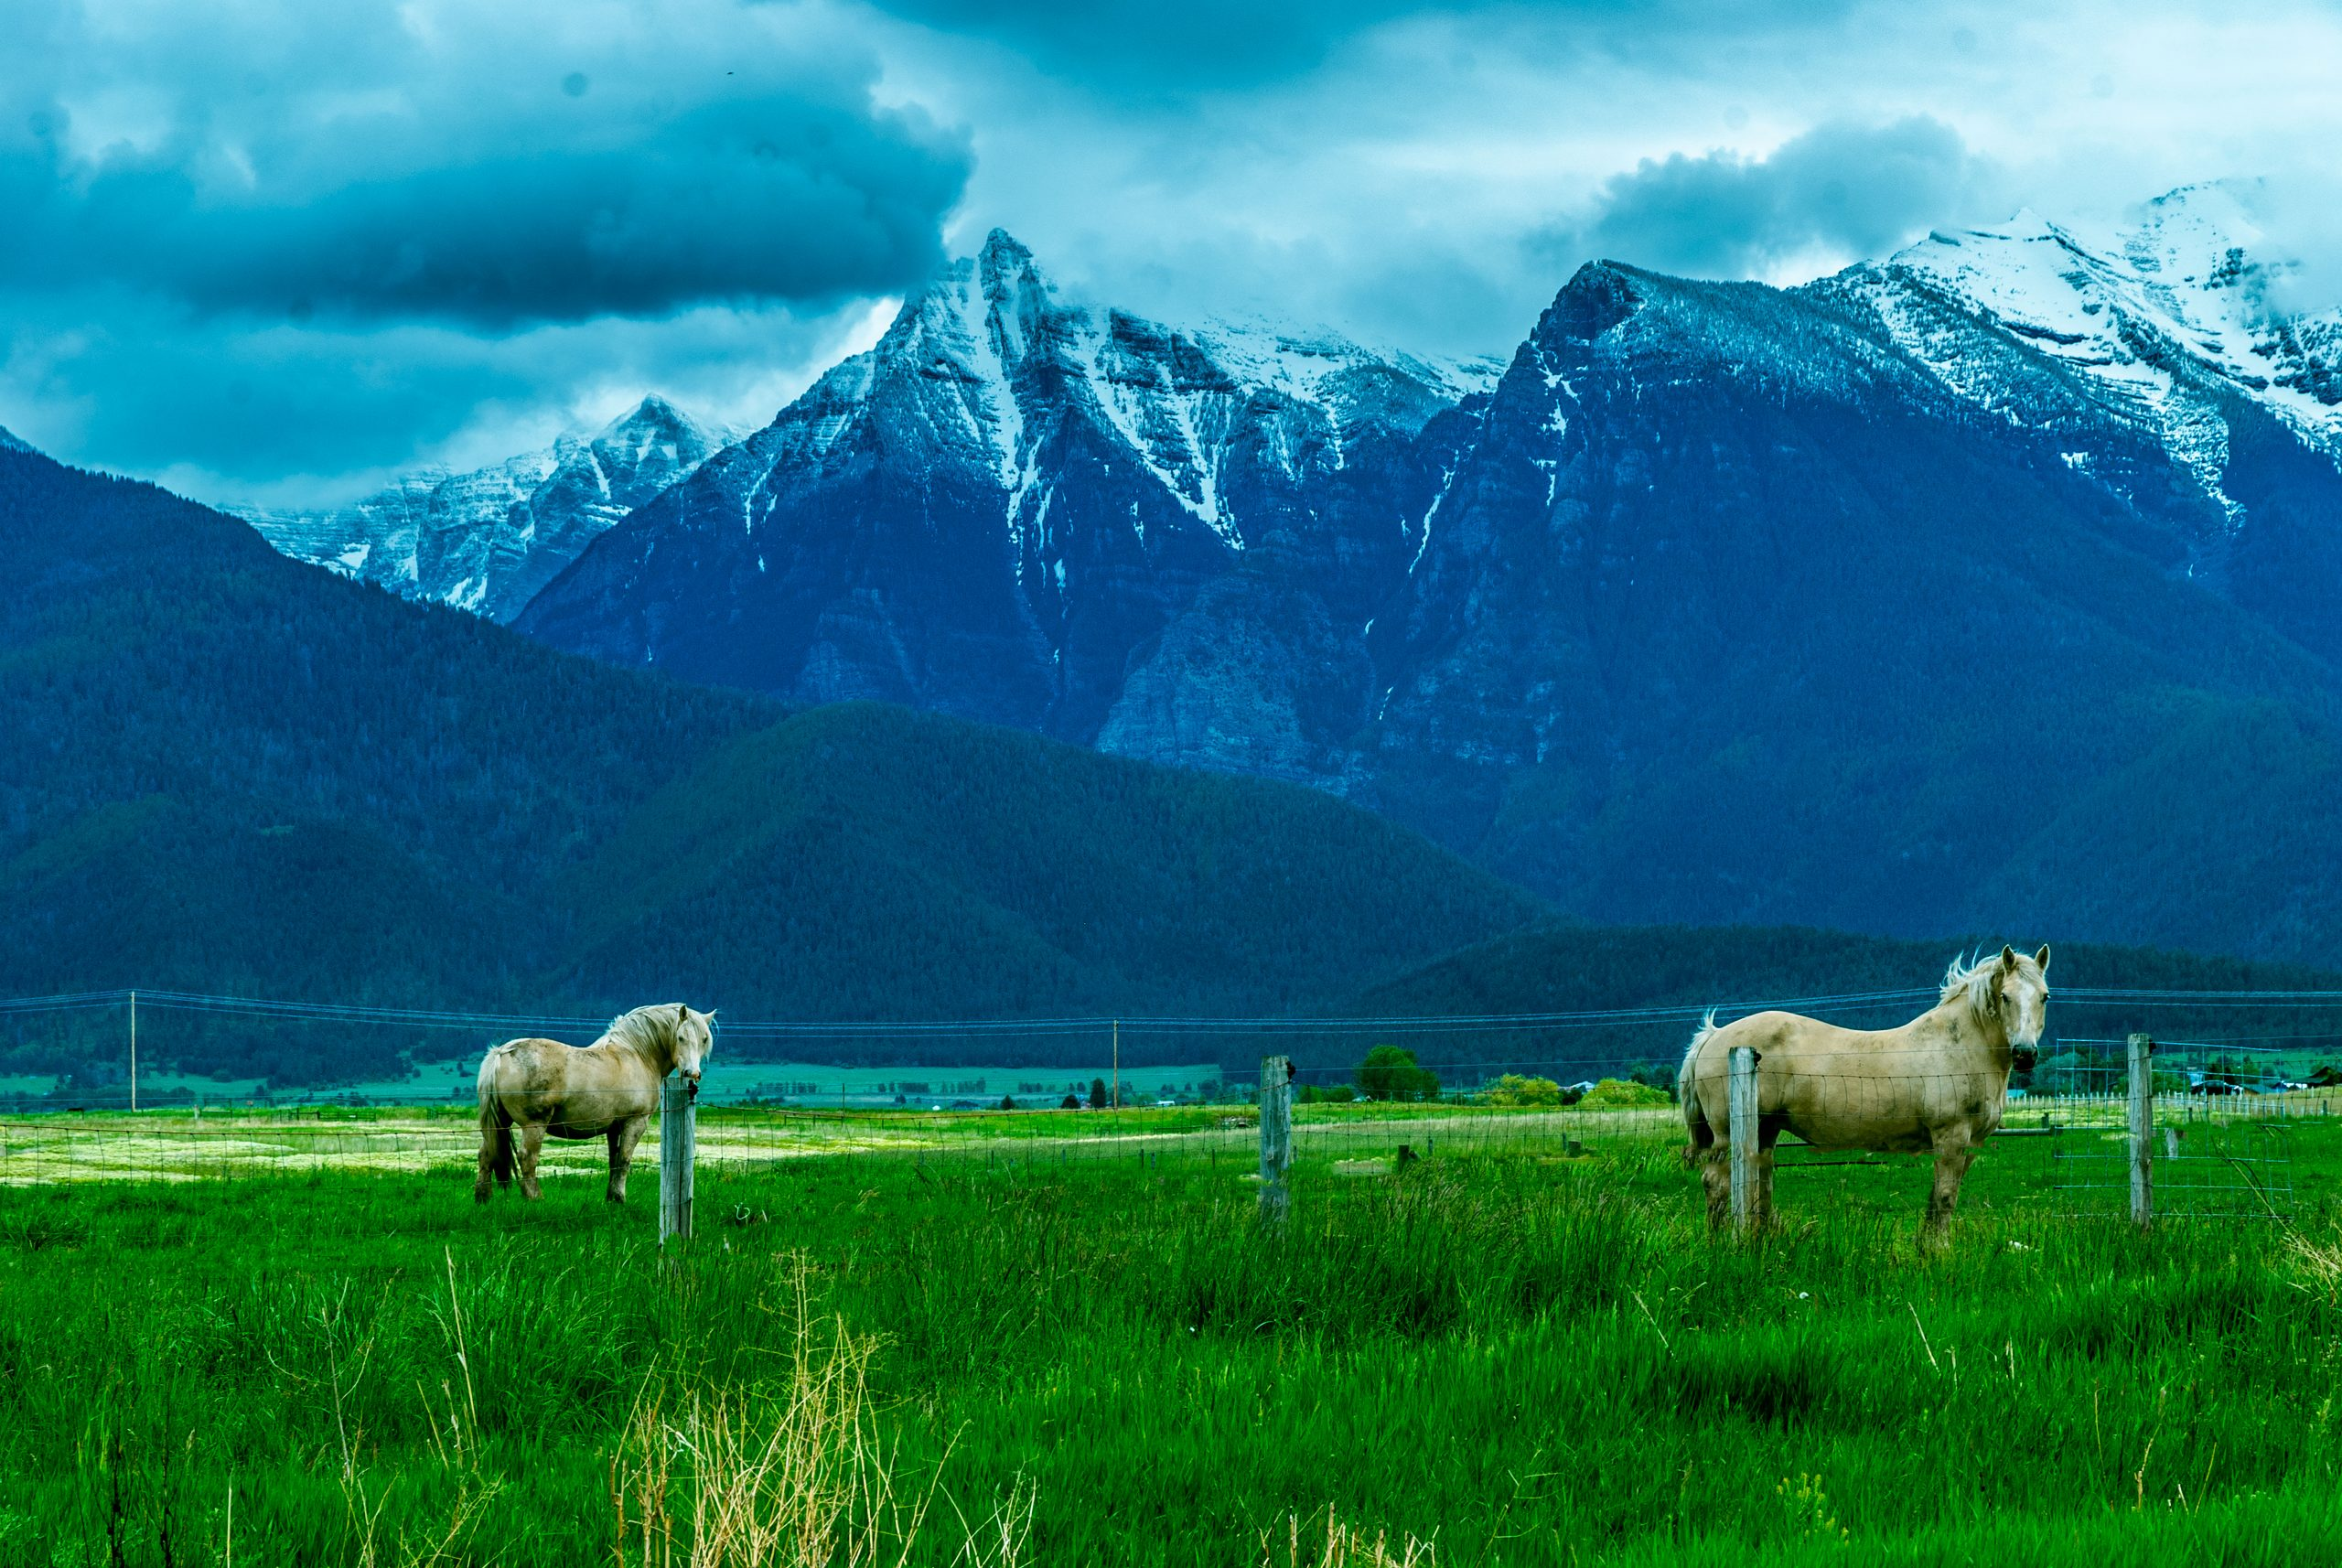 American Cream Draft Horses in a field before the Mission Mountains